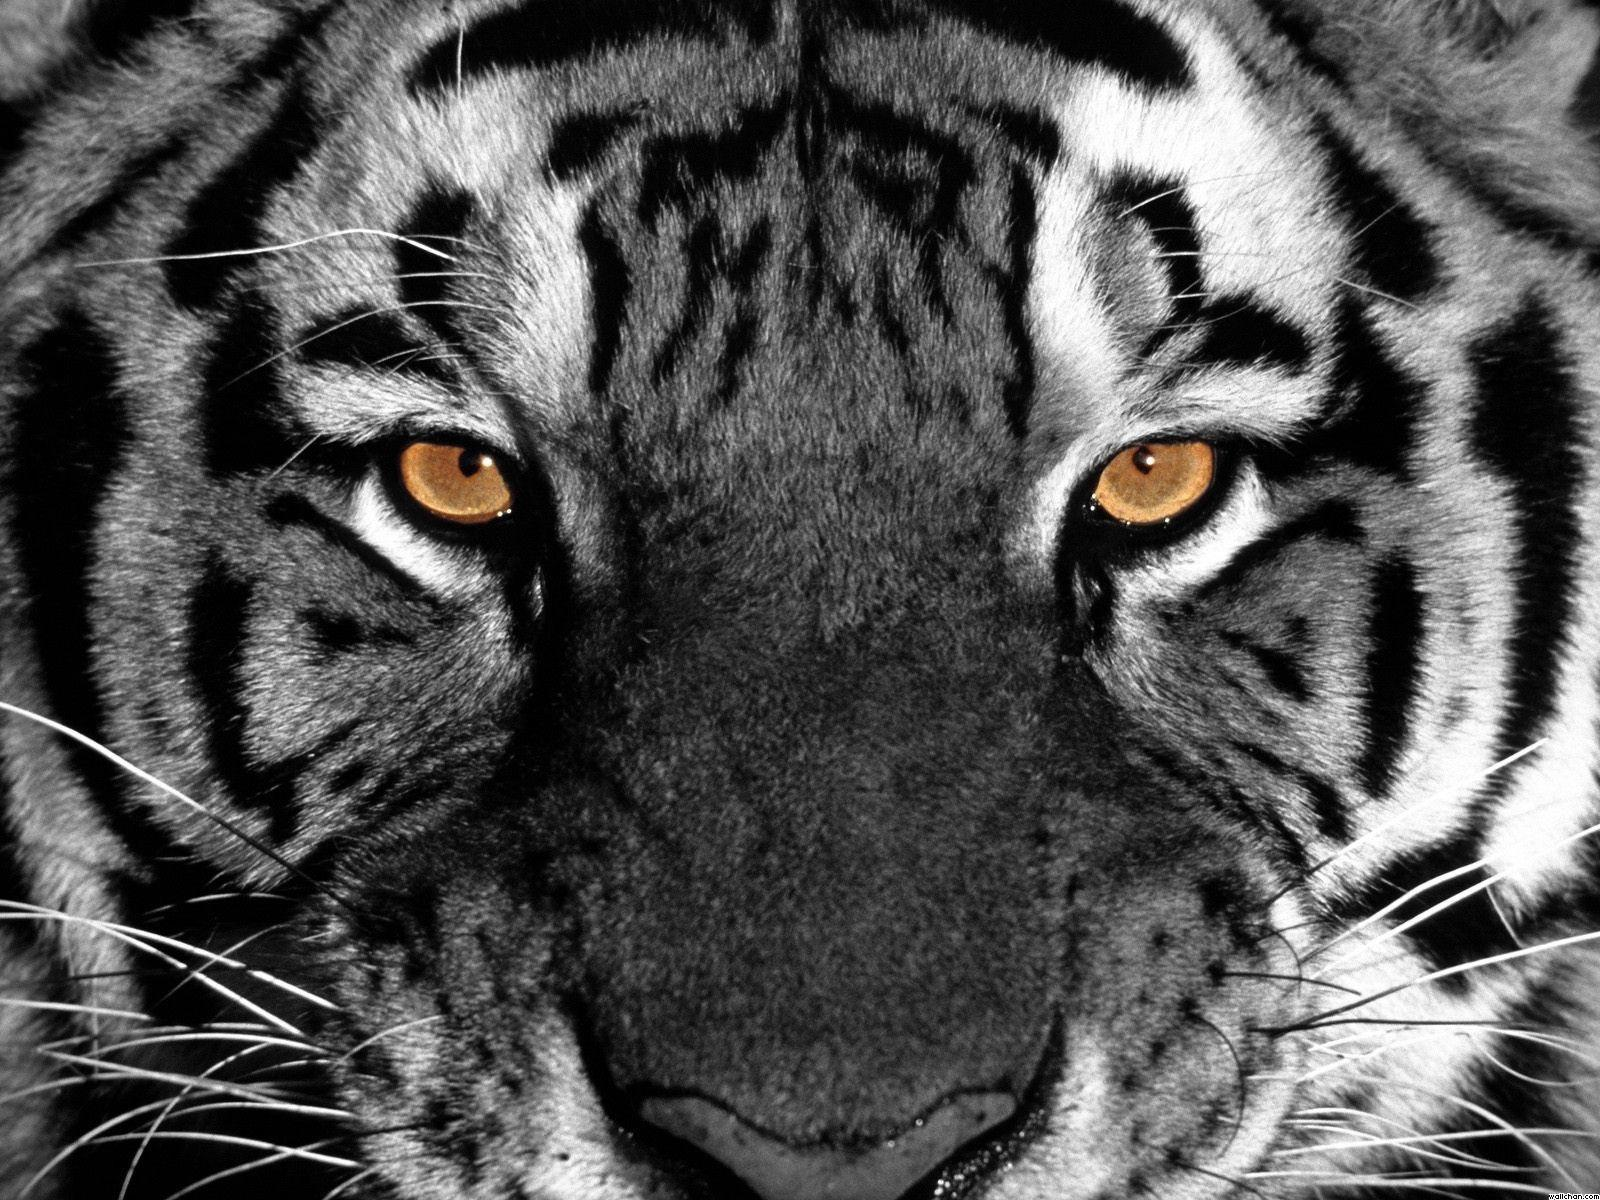 Tiger Eyes Wallpaper - Eyes Wallpaper (28331382) - Fanpop